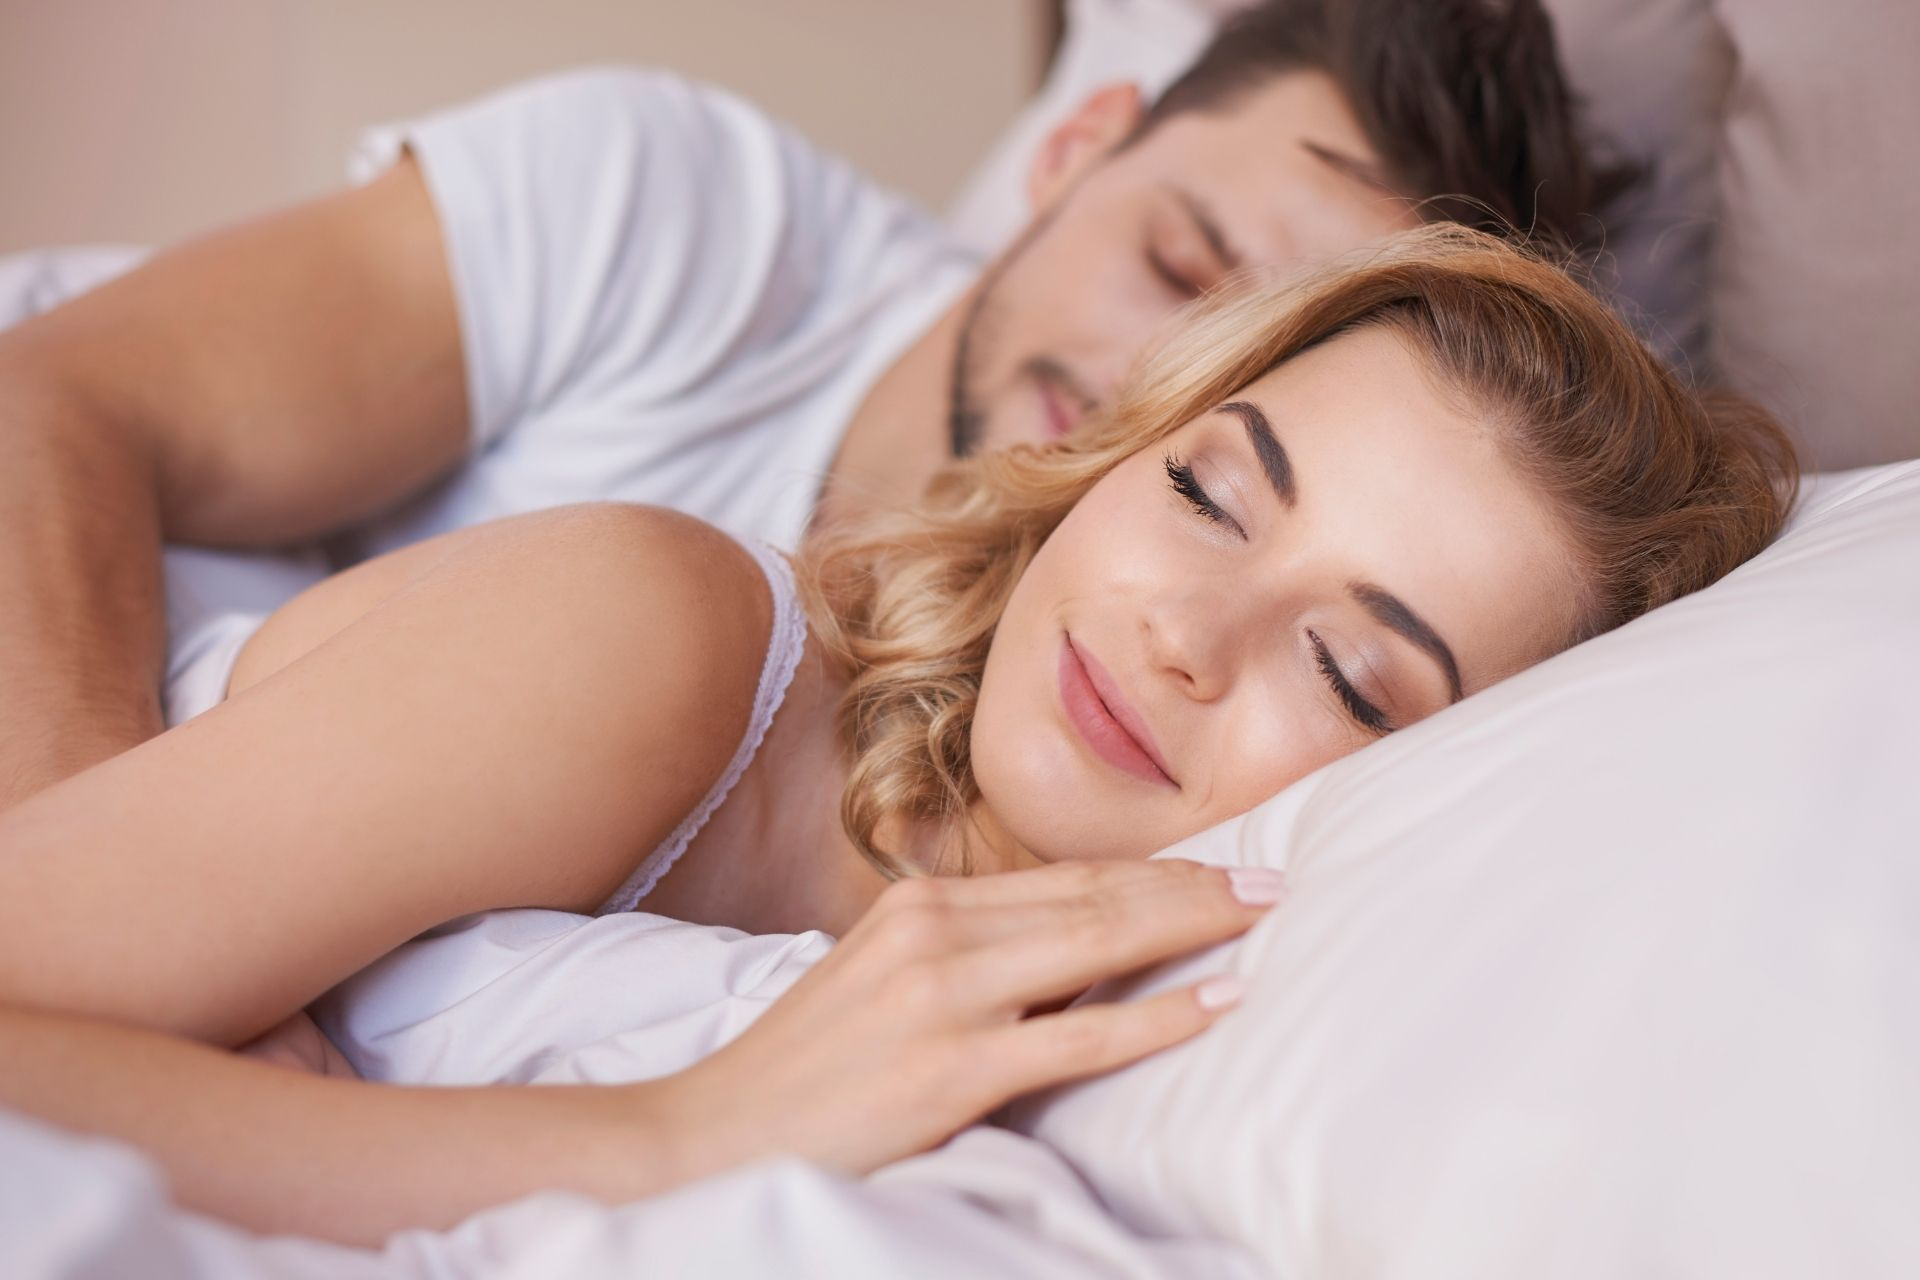 Romantic Good Night Love Messages To My Better Half Love Catalogue